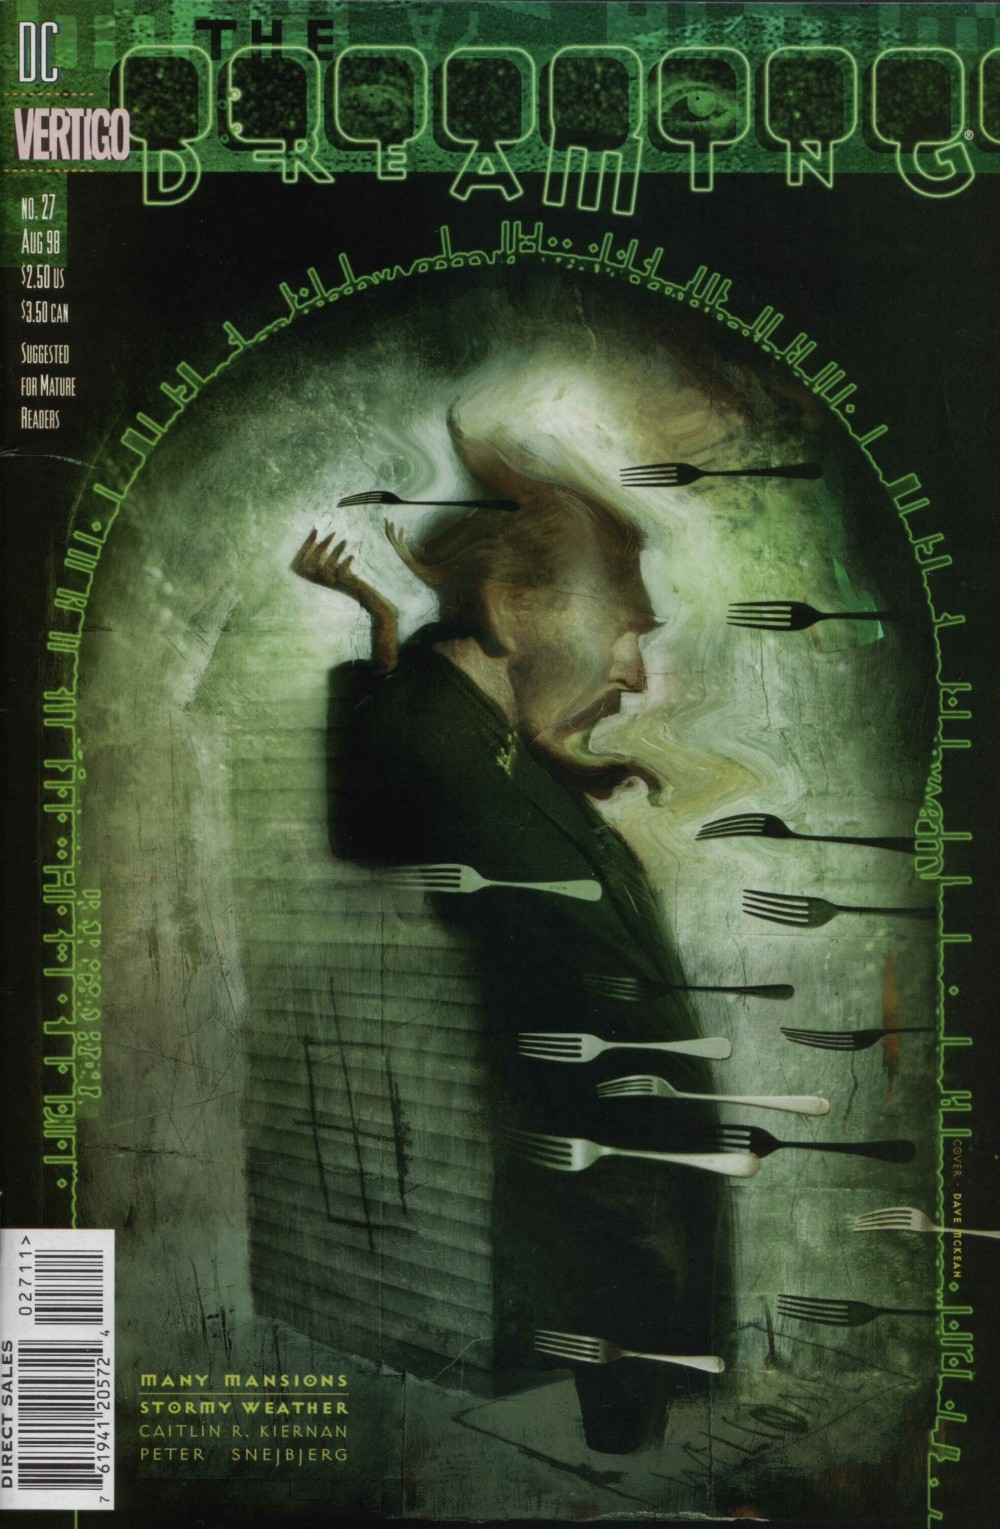 Dreaming, The [DC Vertigo] V1 0027.jpg